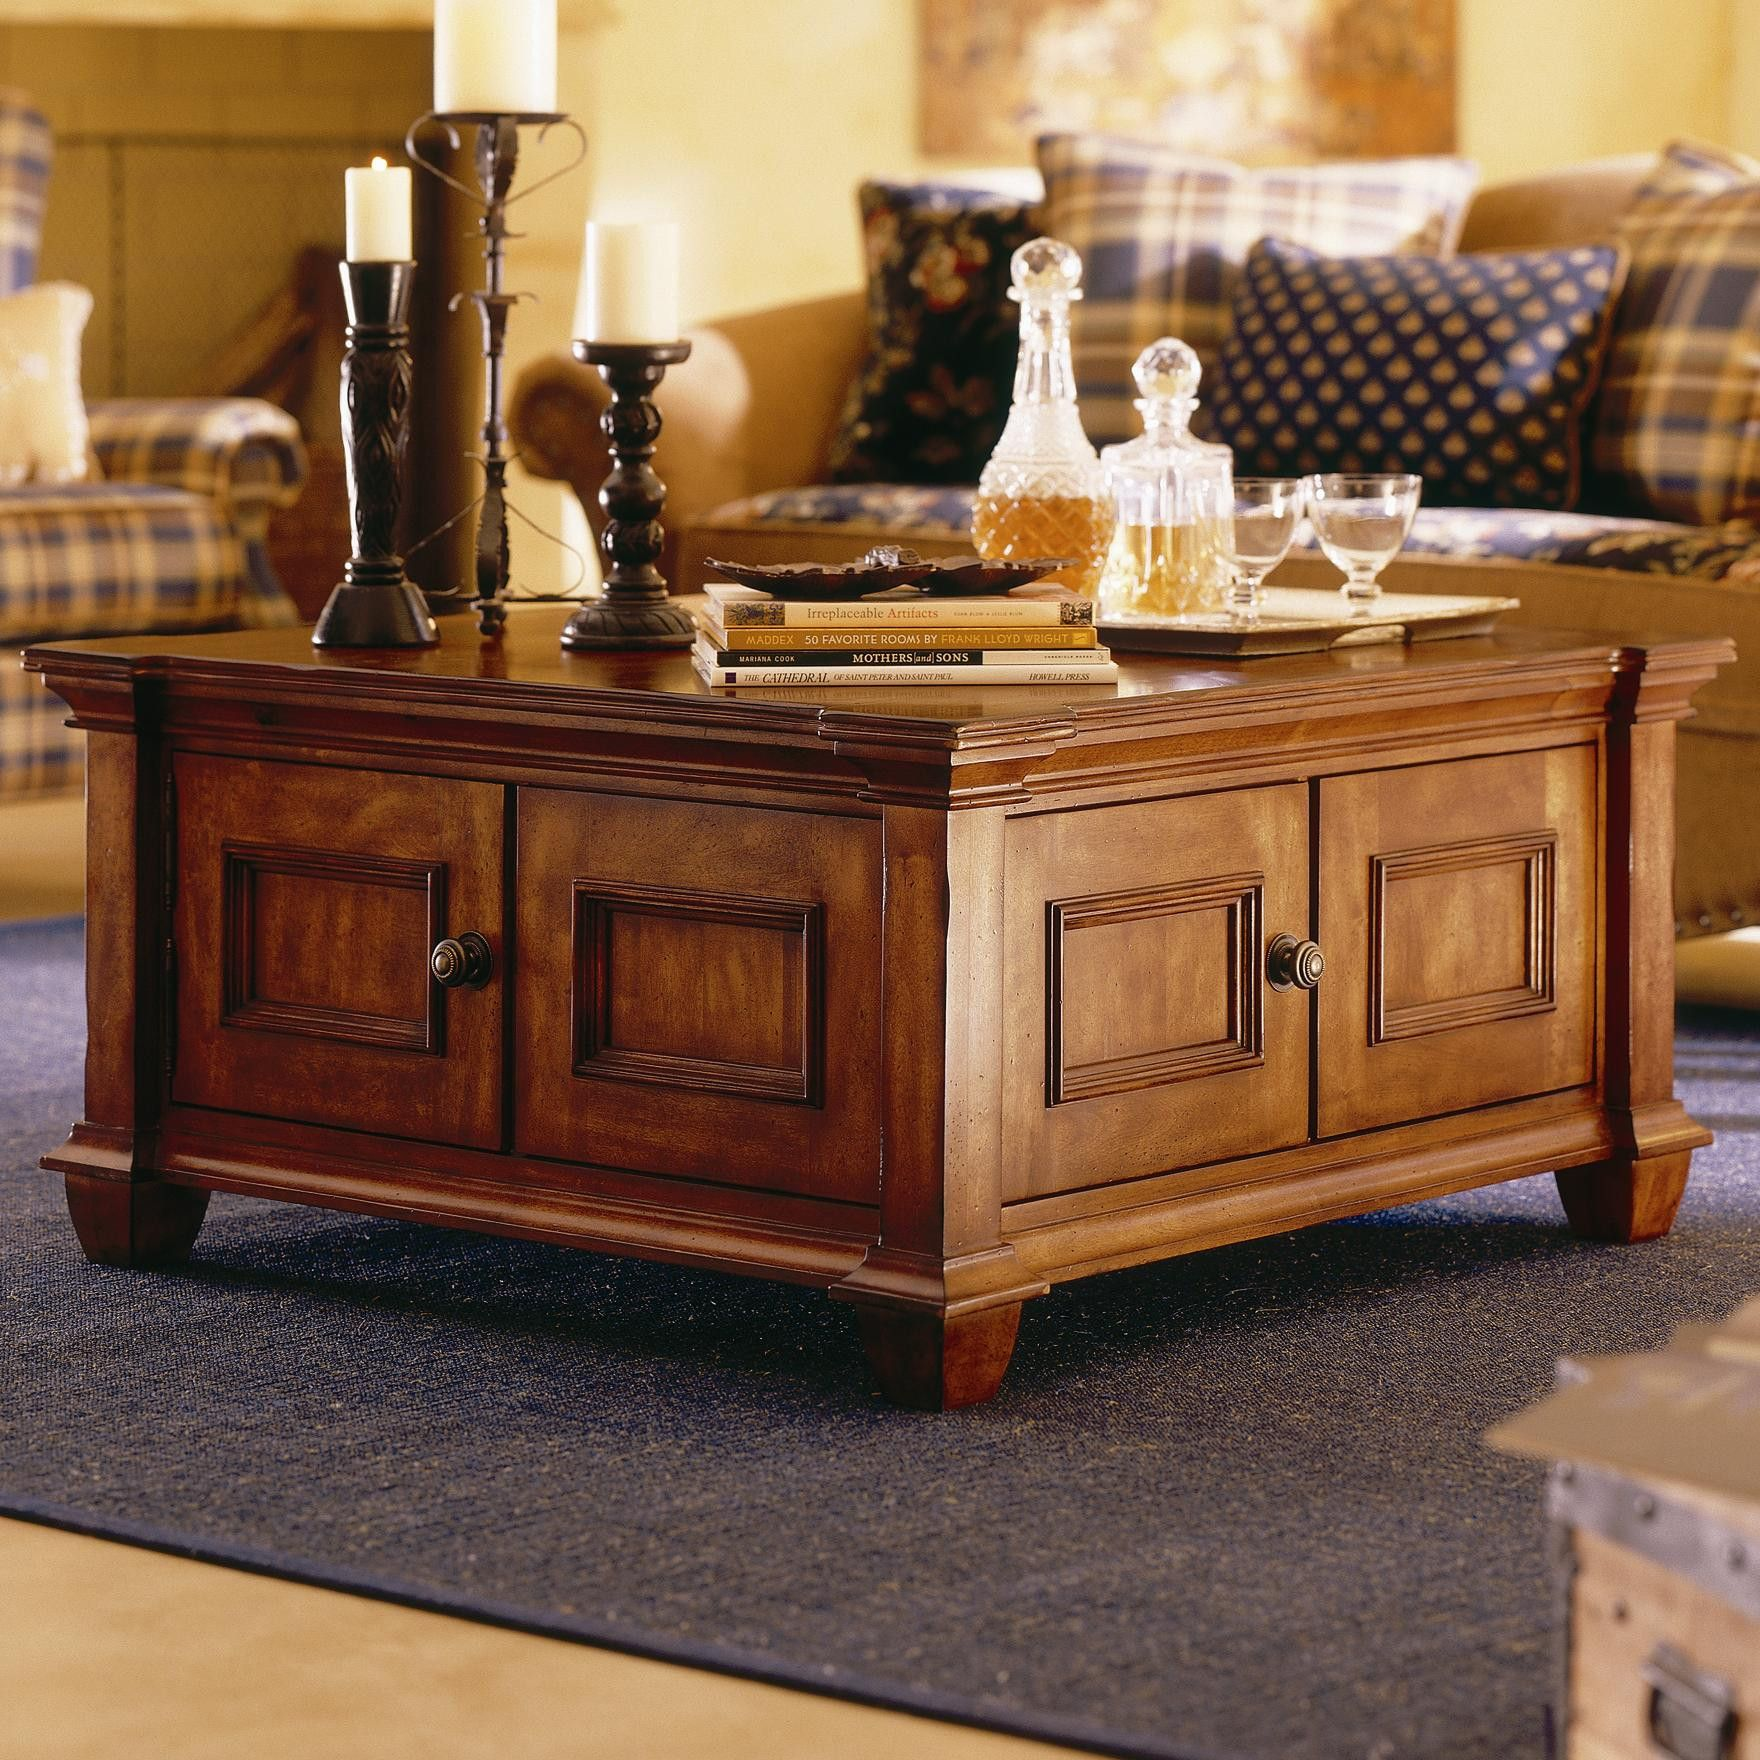 99 Extra Large Square Coffee Tables Best Furniture Gallery Check